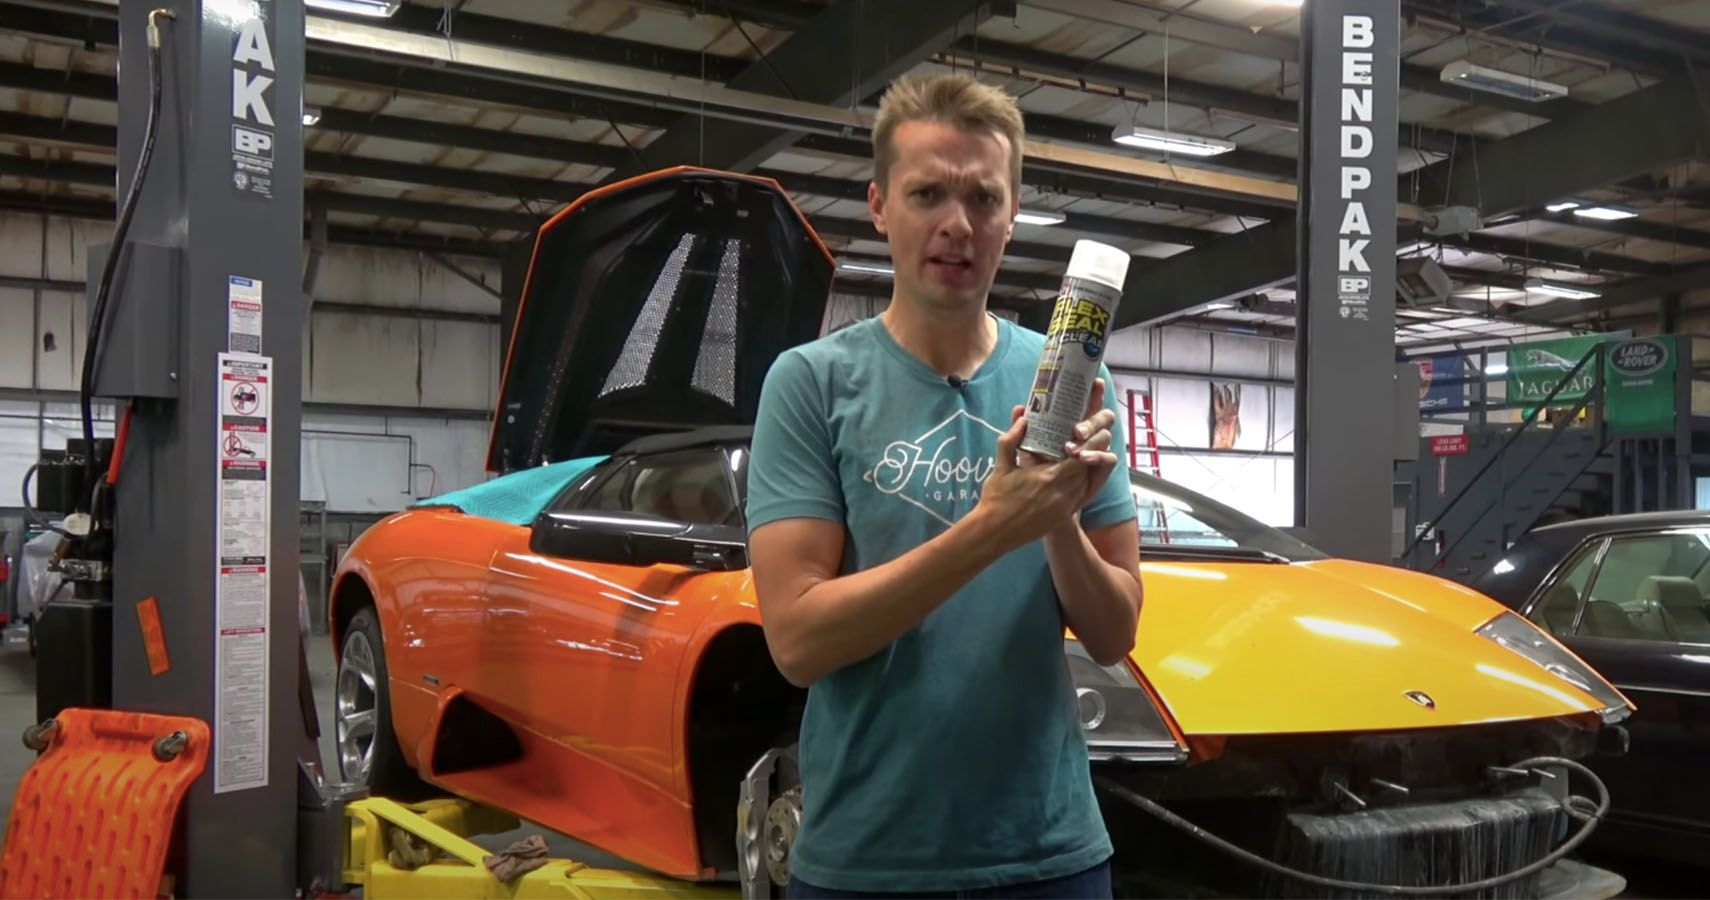 Watch Hoovie's Garage Use Flex Seal On A Cracked Lambo Gearbox